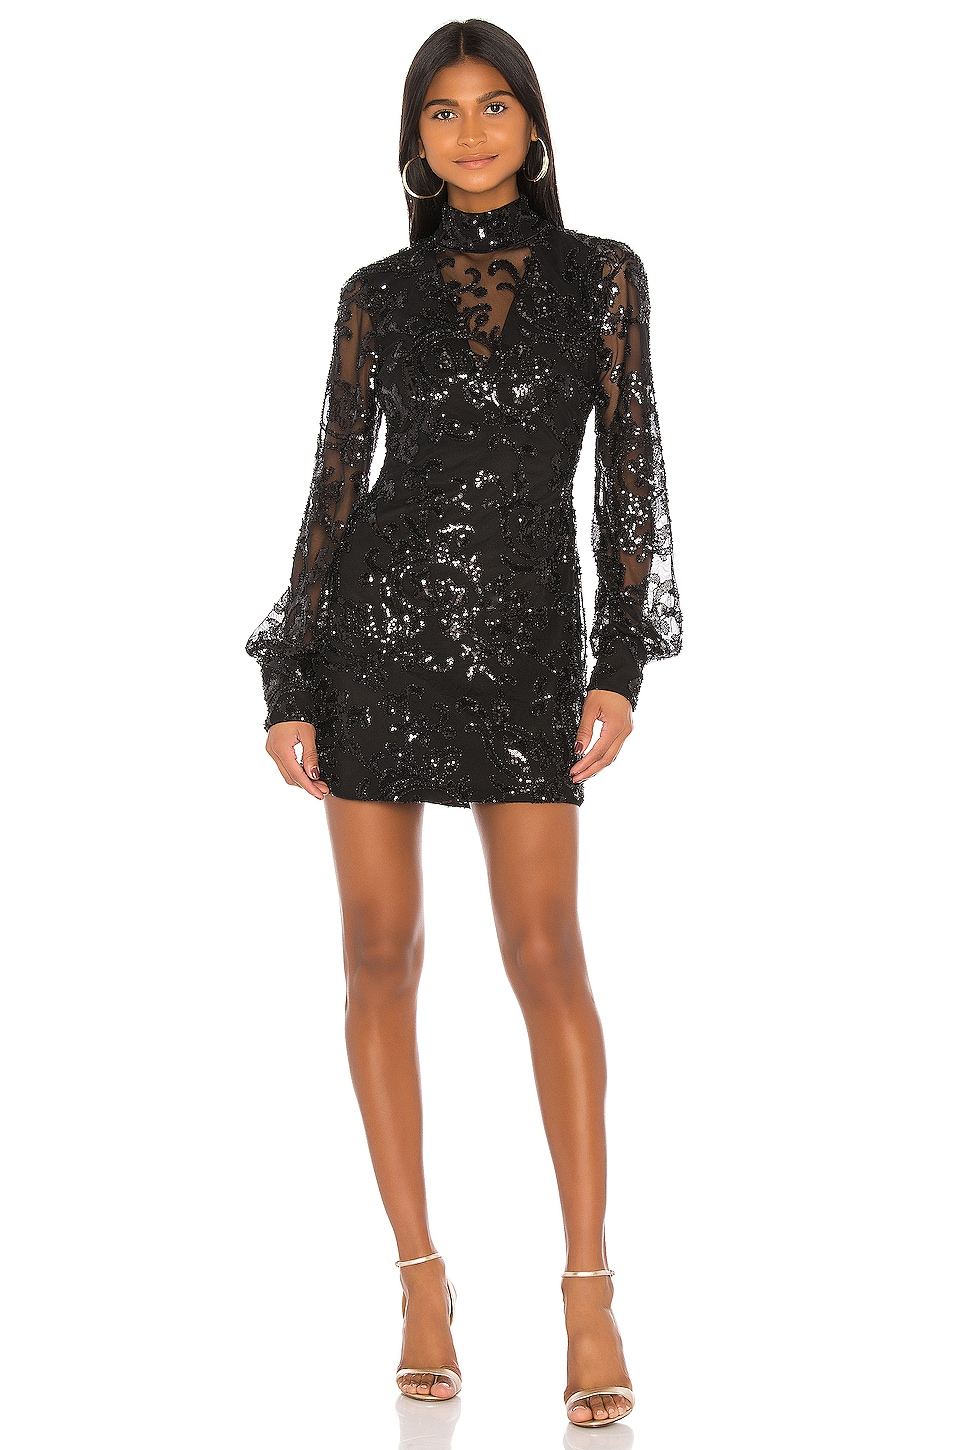 Alexis Franciska Dress in Beaded Black